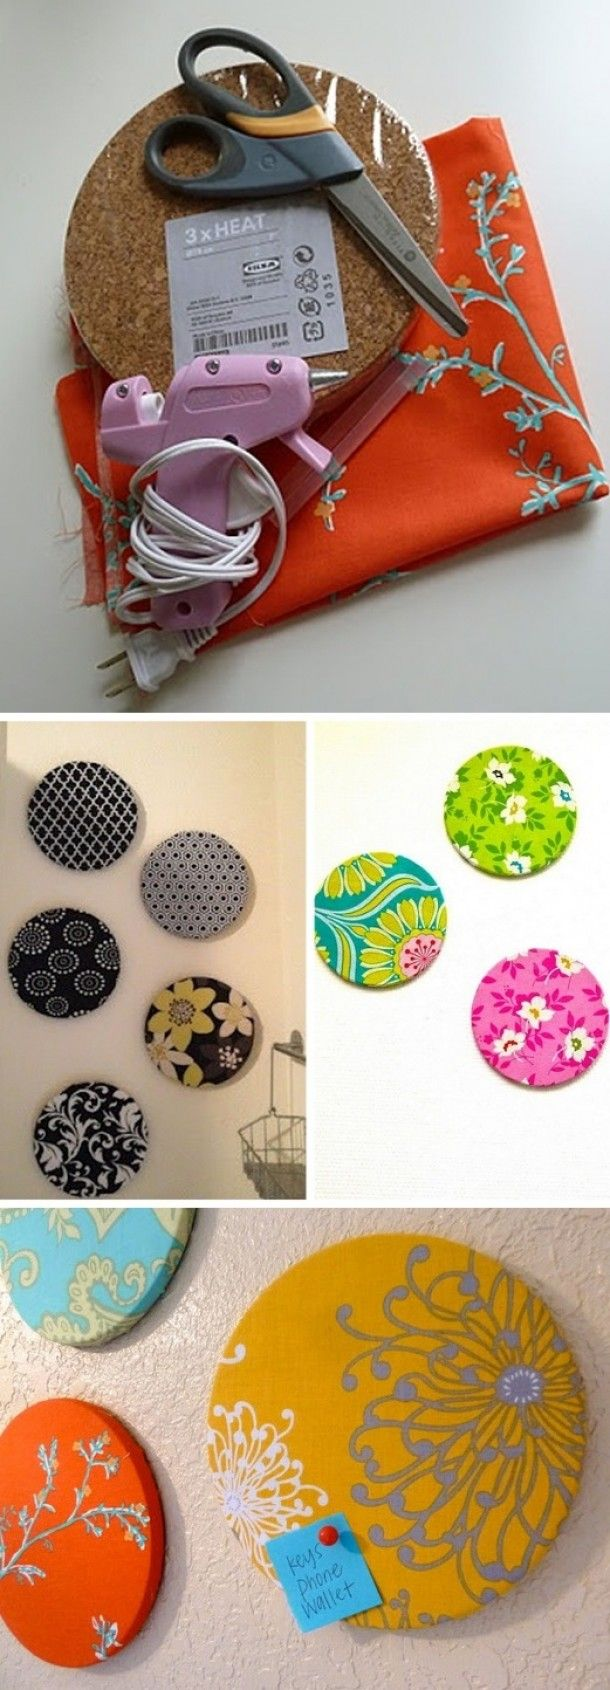 best arts and crafts images on pinterest good ideas creative